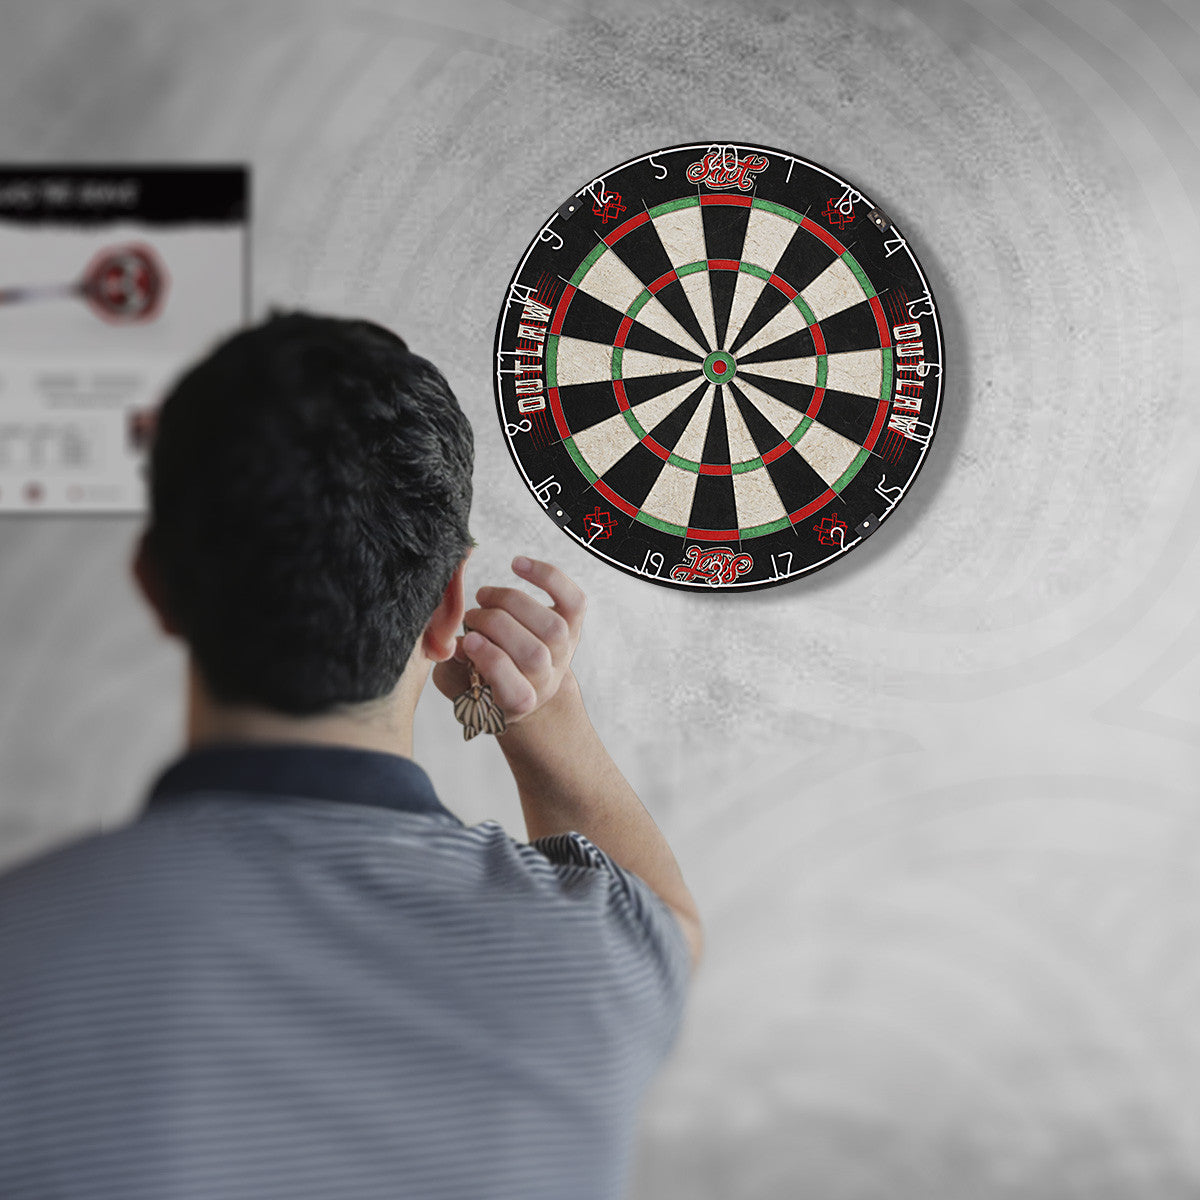 A starter for 5: basic dart games you should know